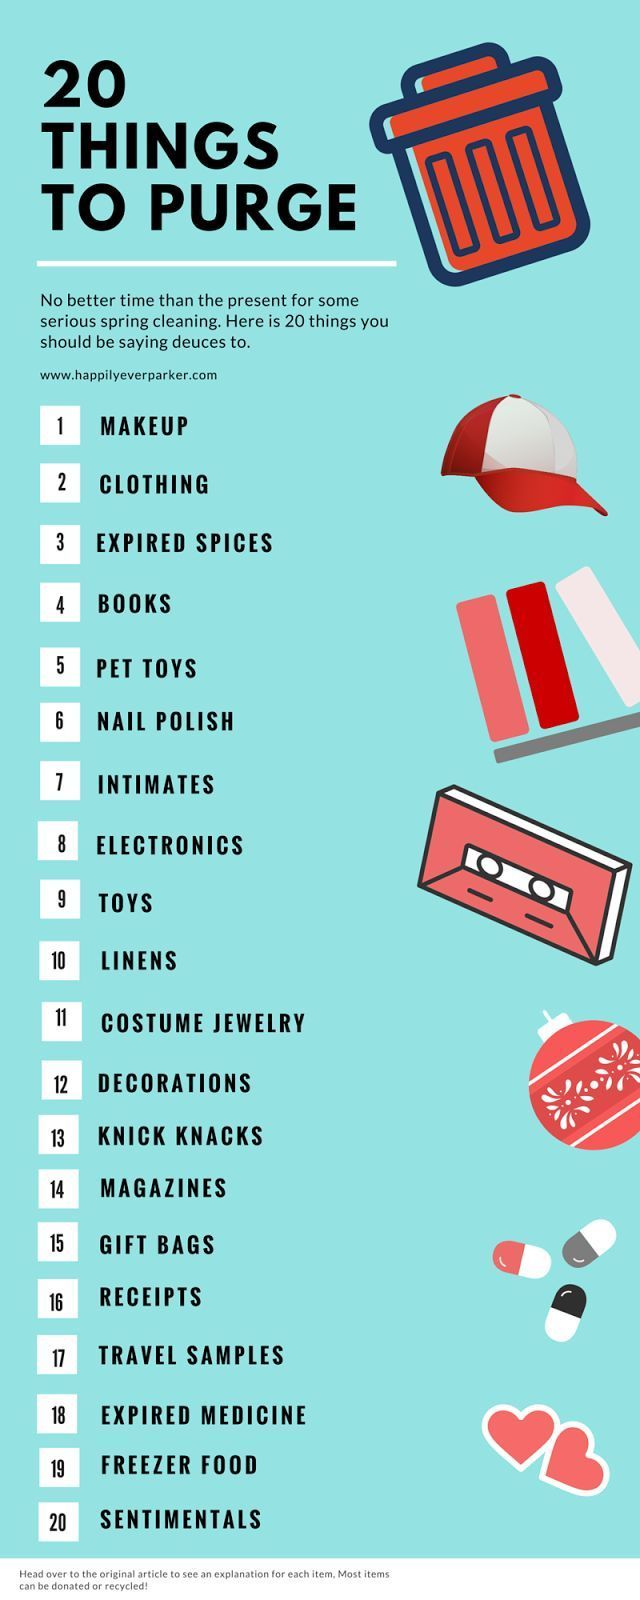 Happily Ever Parker: 20 Things To Purge, Organize